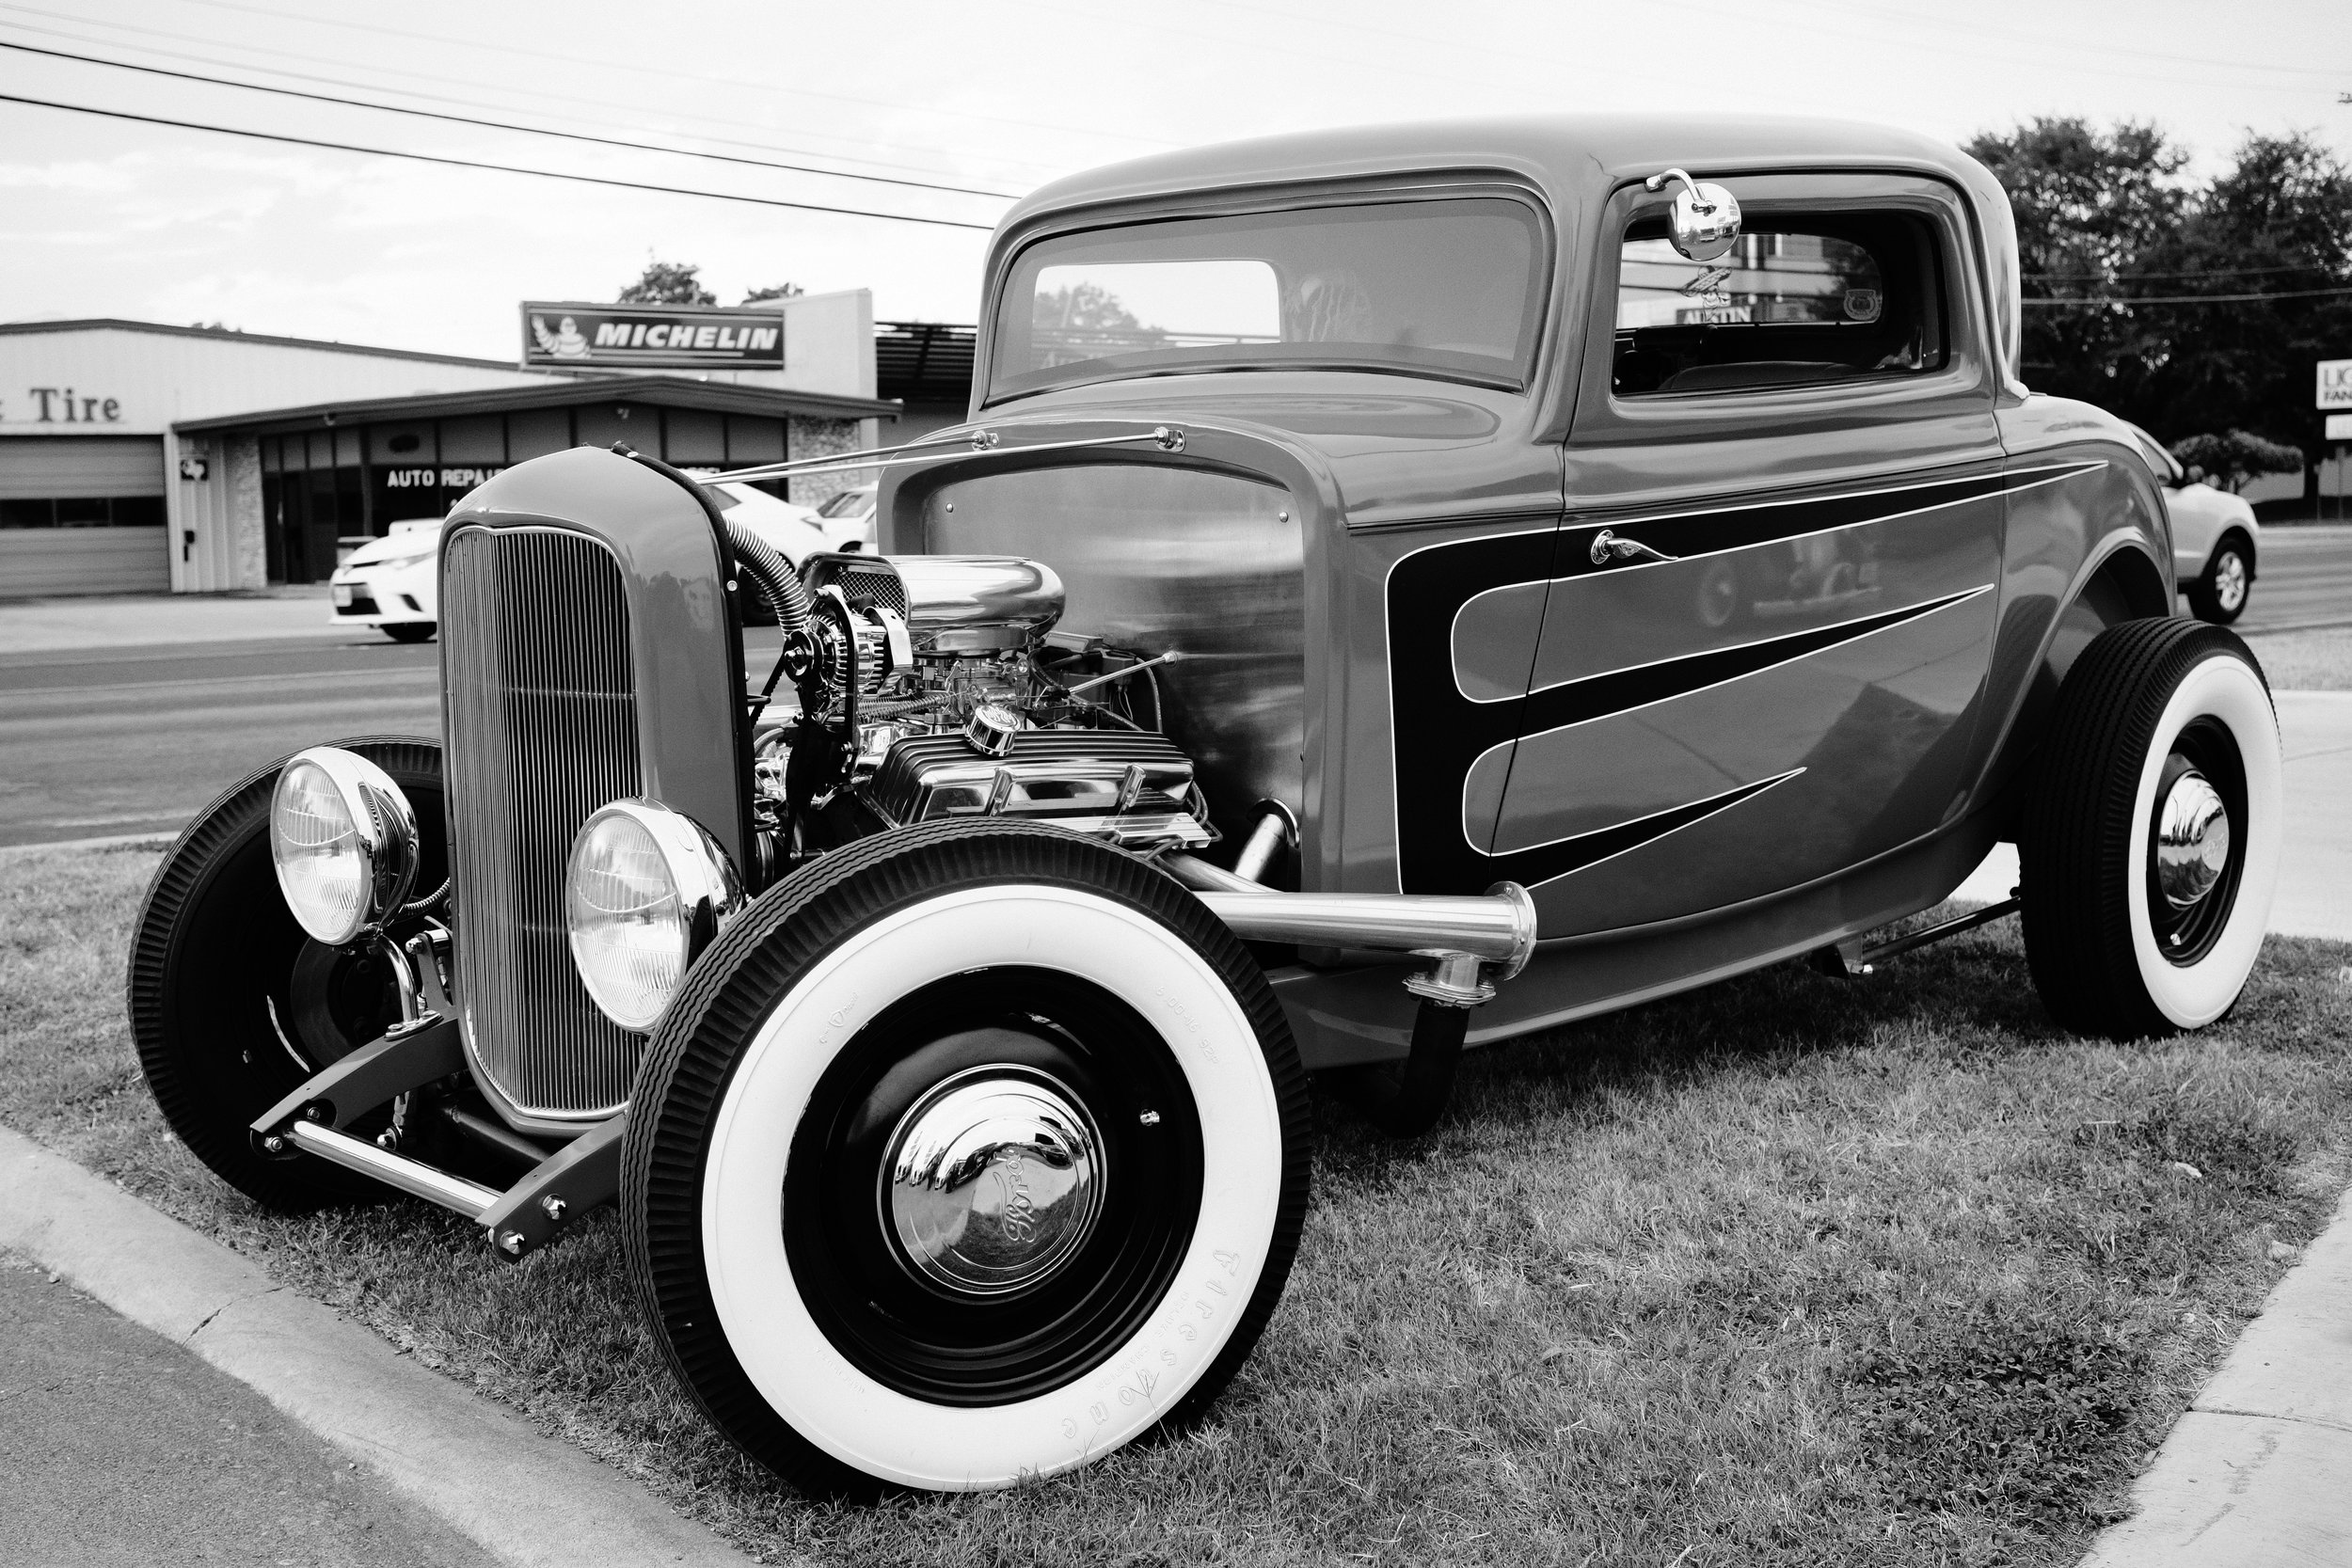 top-notch-hot-rods-08052017-4731.jpg